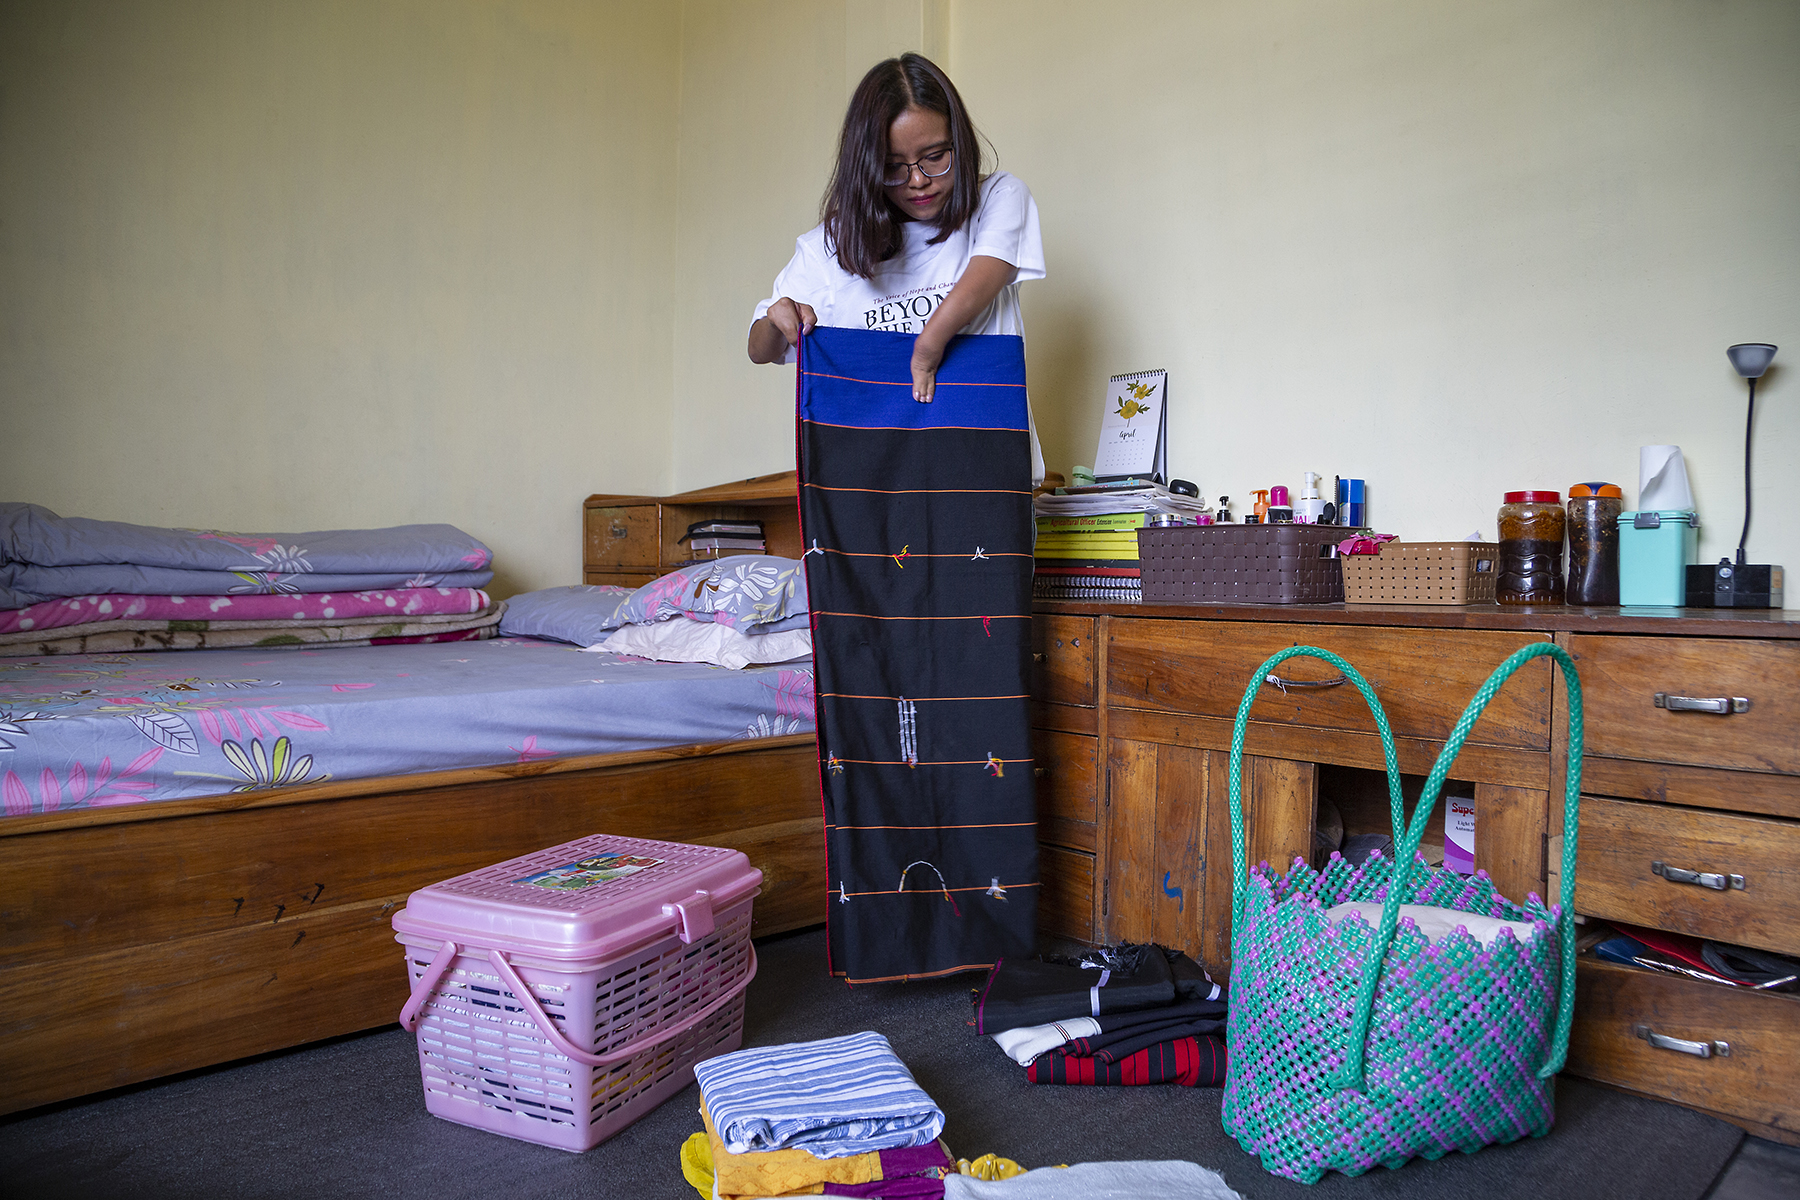 Ashe stands in her bedroom, vertically folding a typical Naga shawl worn by women. It is black, with a wide strip of royal blue at the top. Thin horizontal stripes of orange divide the shawl into 10 broad bands. To the left is a wooden cot with mattress covered in a pink and grey patterned bedsheet. To the right is a long wooden table with drawers. In front of her are two small piles of folded clothes, a pink plastic hamper with a lid, and a large plastic, woven, pink-and-green bag with long green handles.